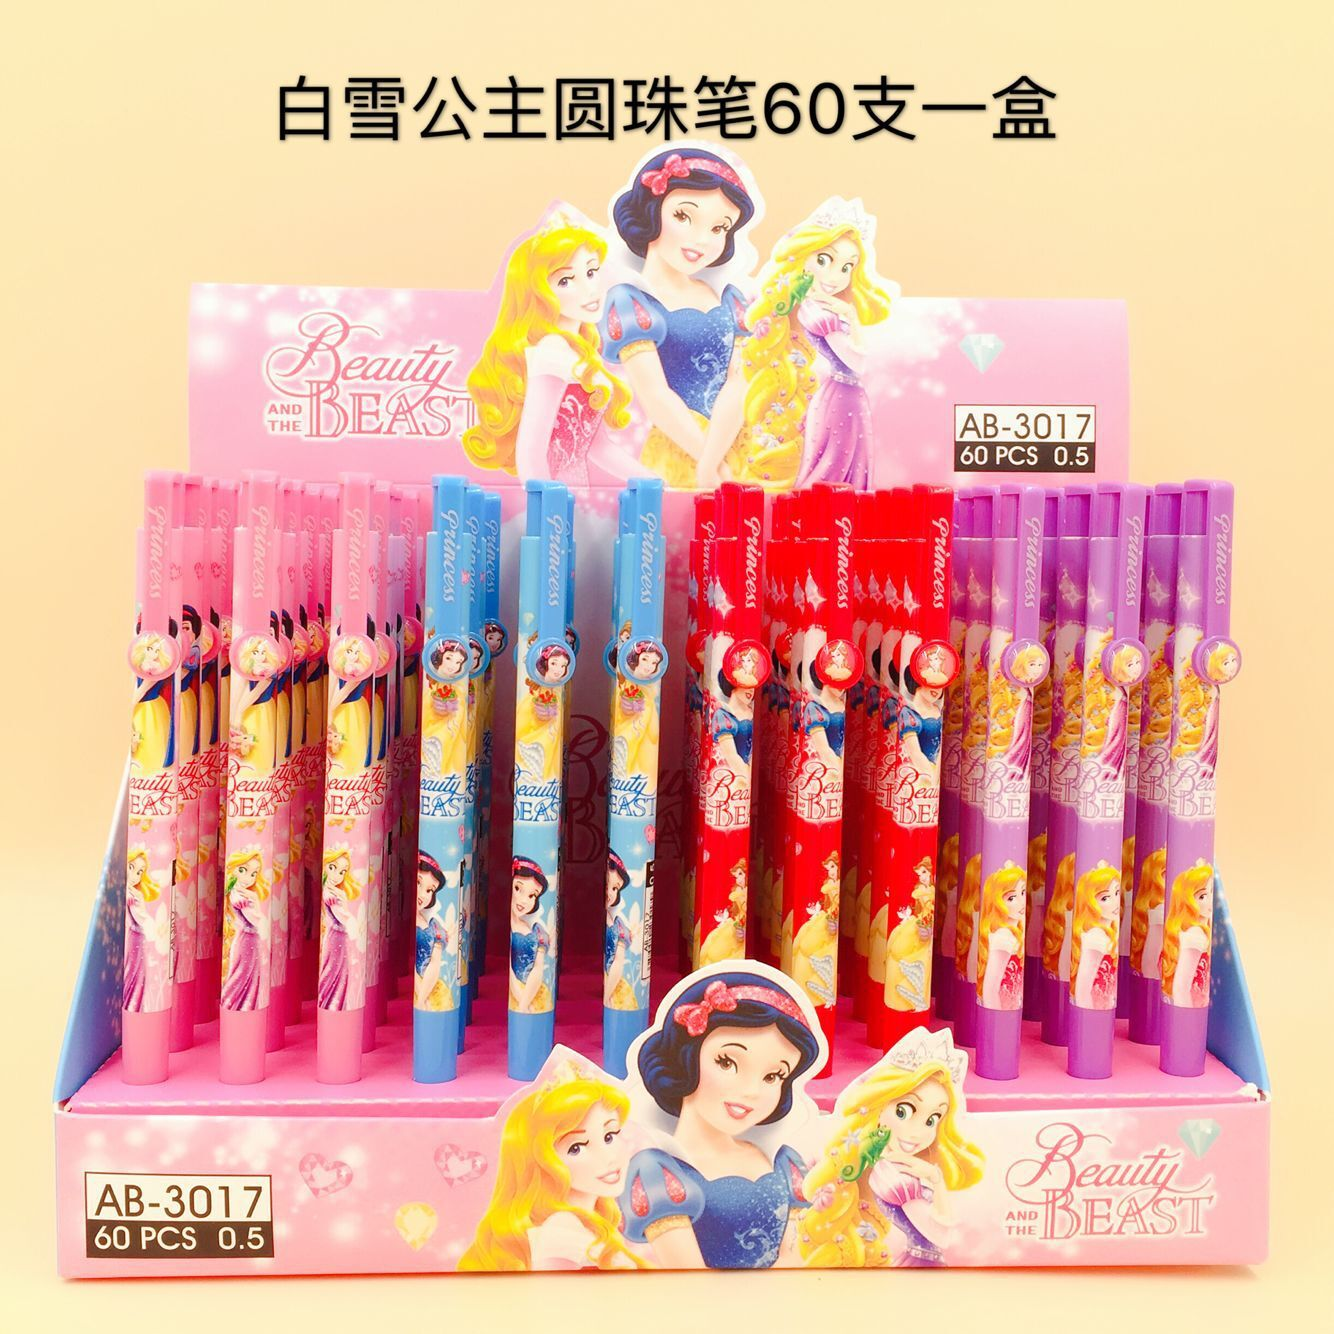 60 Pcs/lot 0.5 Mm Snow White Princess Press Ballpoint Pen School Office Supply Gift Stationery Papelaria Escolar